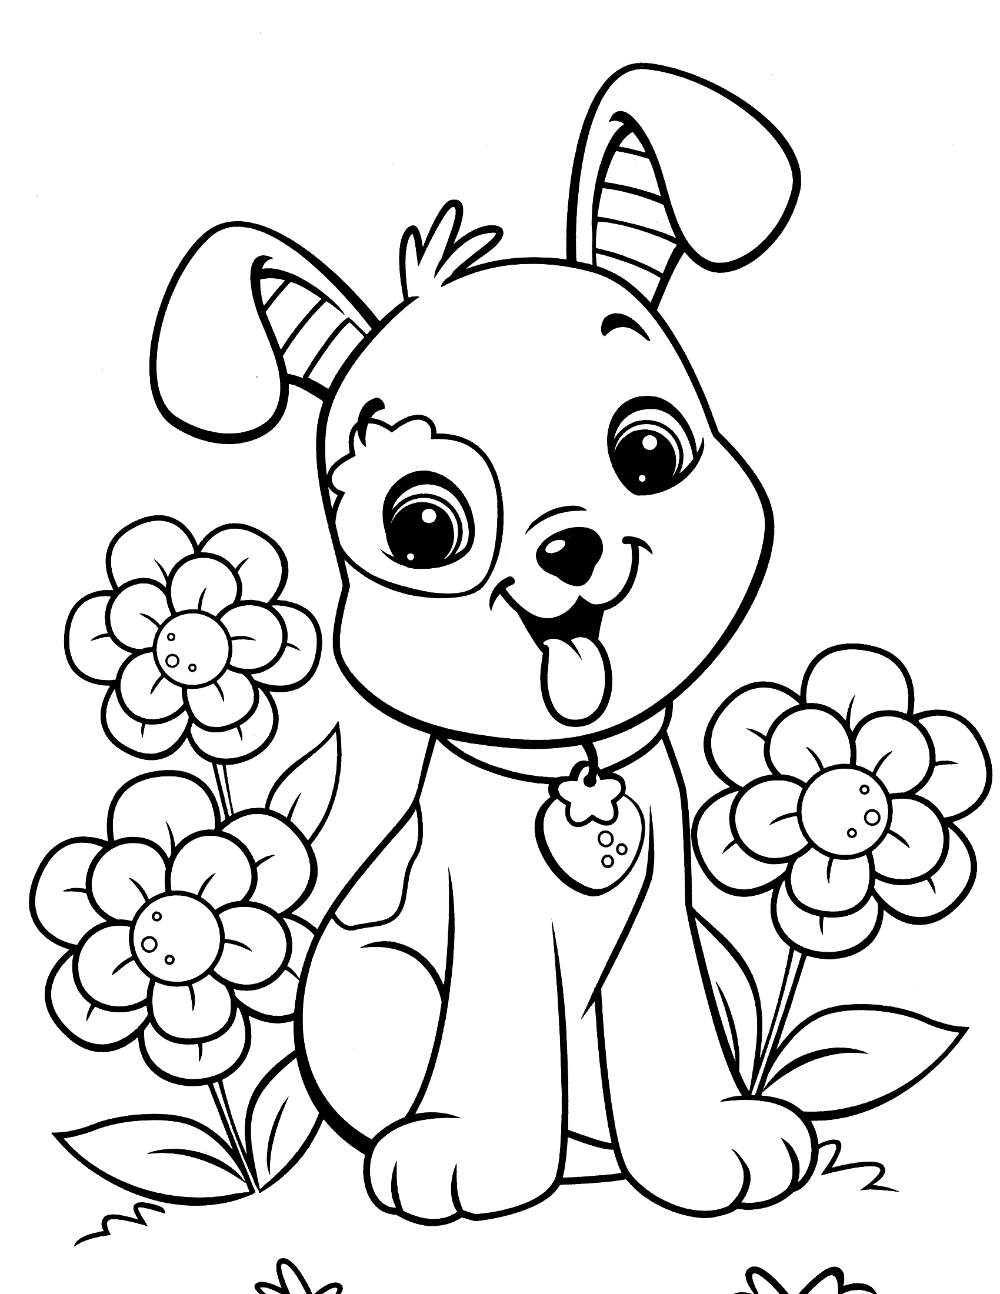 Coloring Book Best Puppy For Kids Free Puppy Coloring Pages Dog Coloring Page Cute Coloring Pages